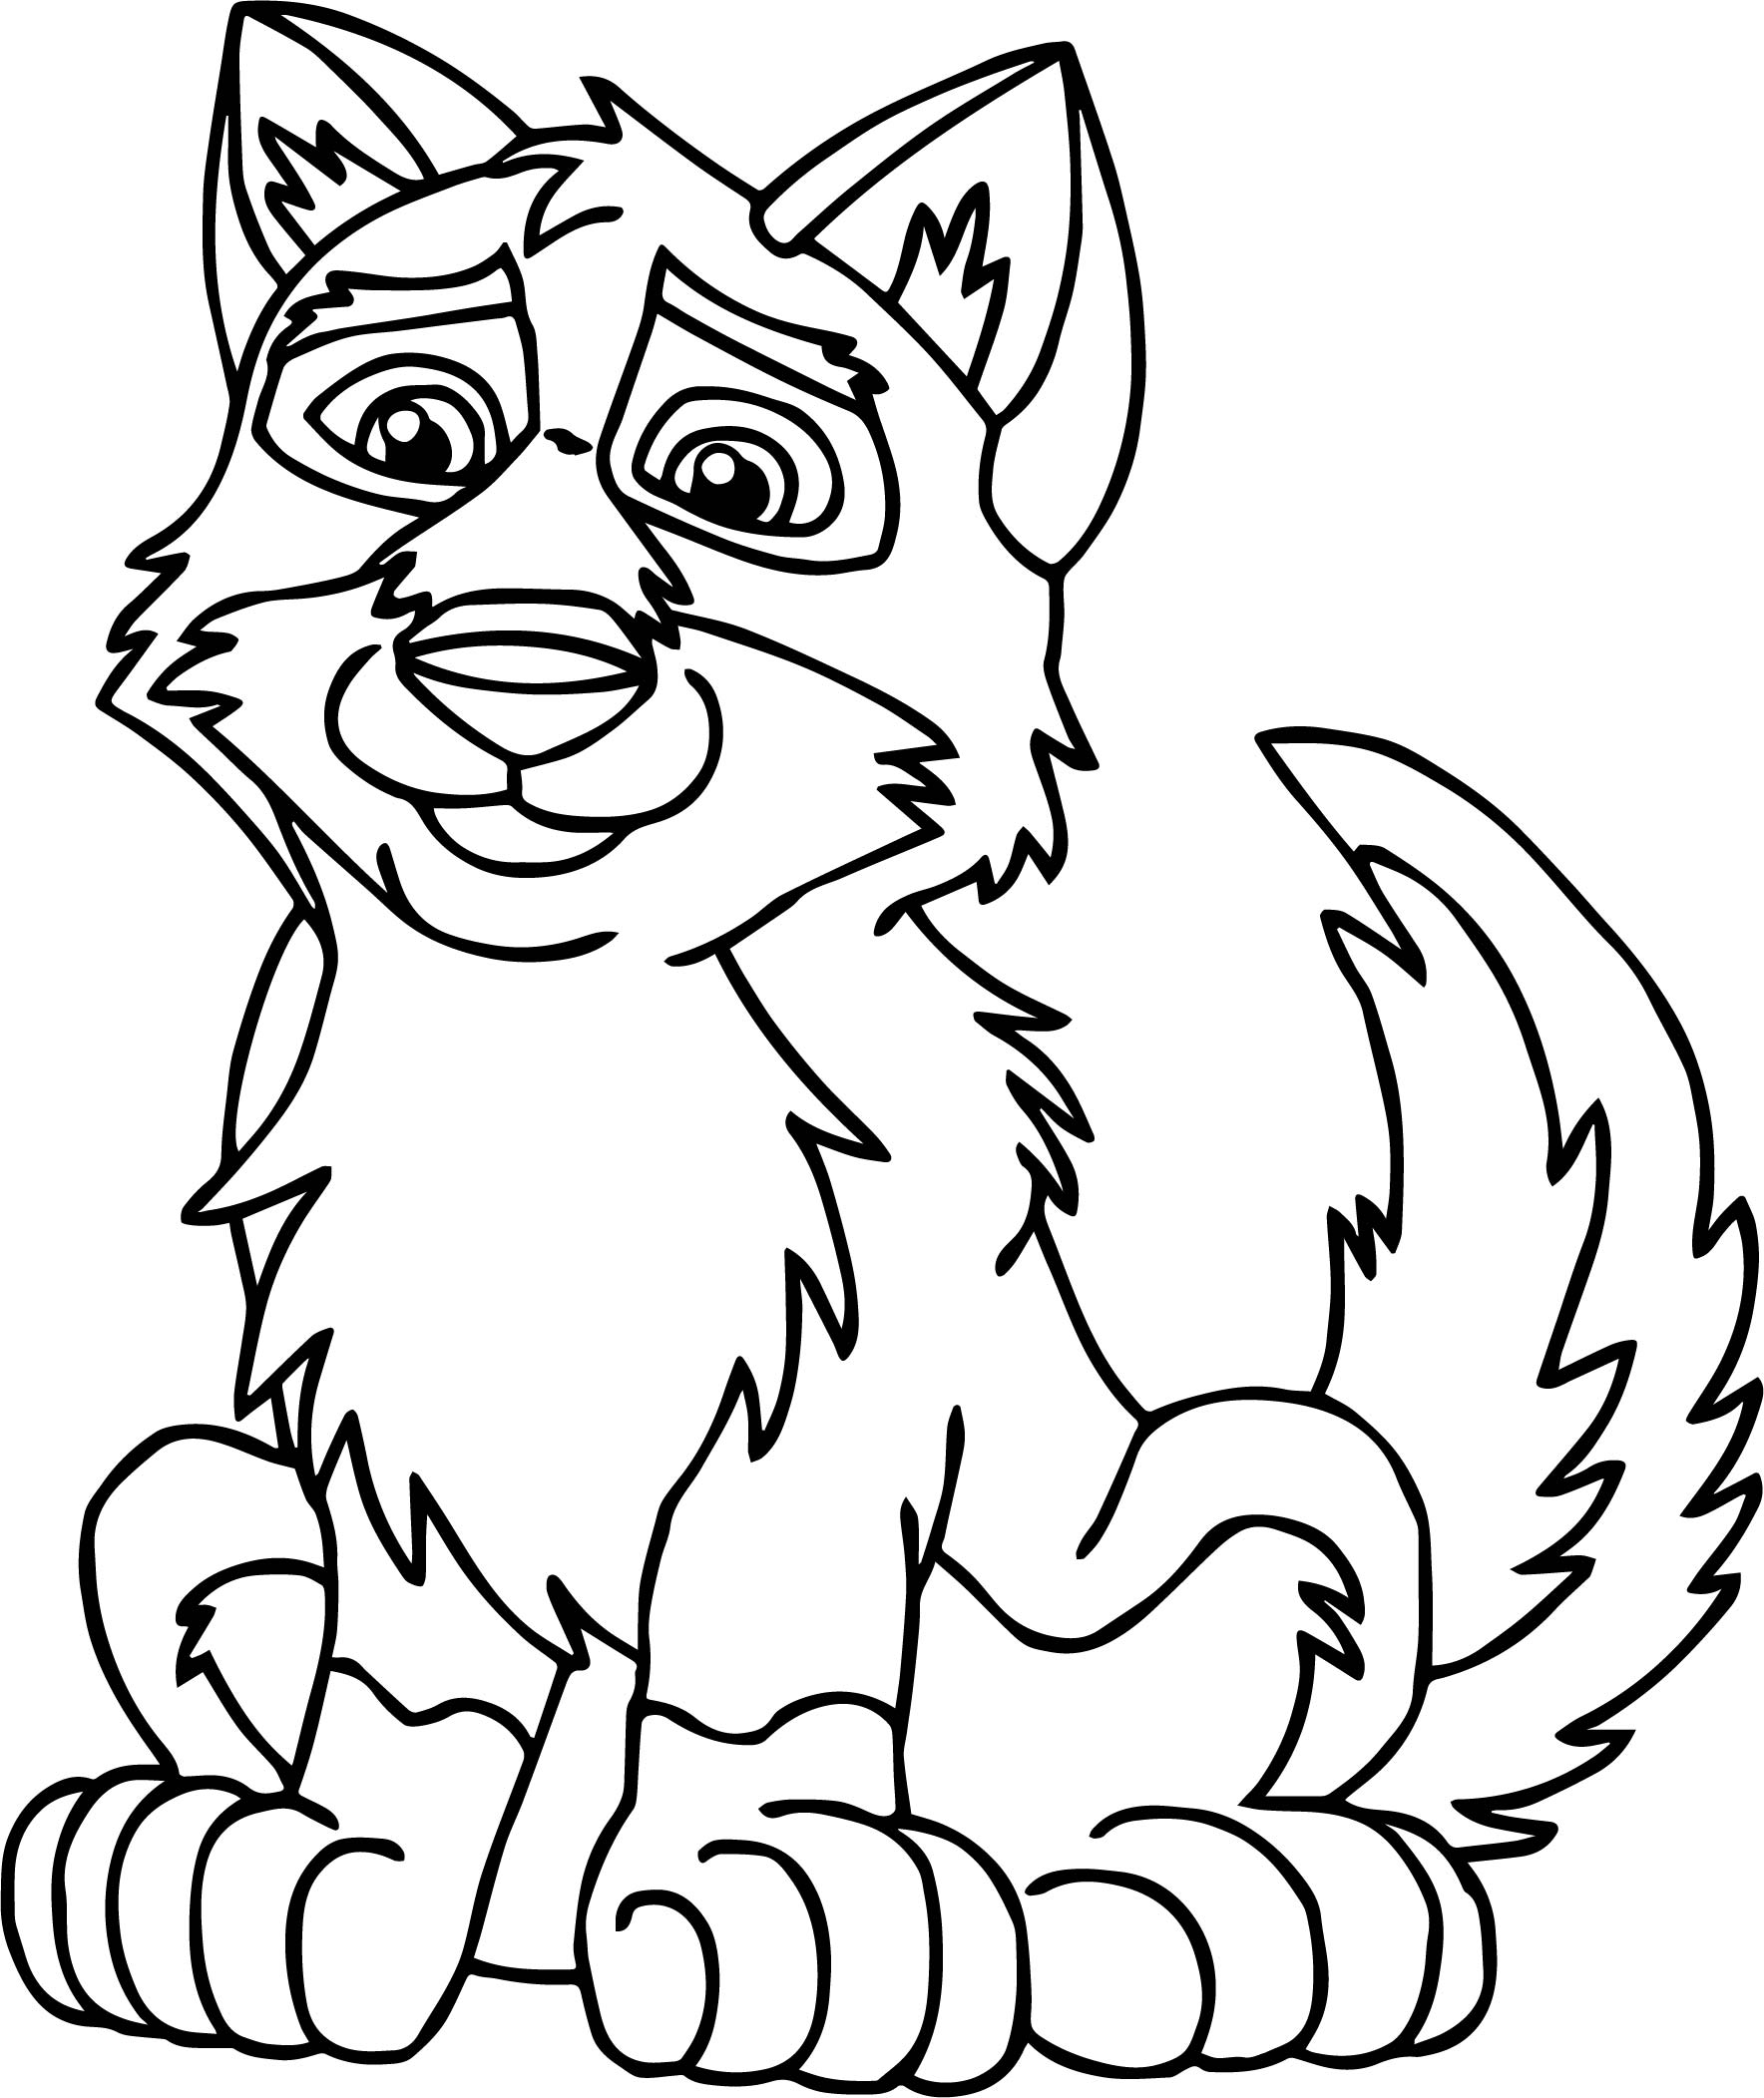 Puppy Balto Wolf Coloring Page